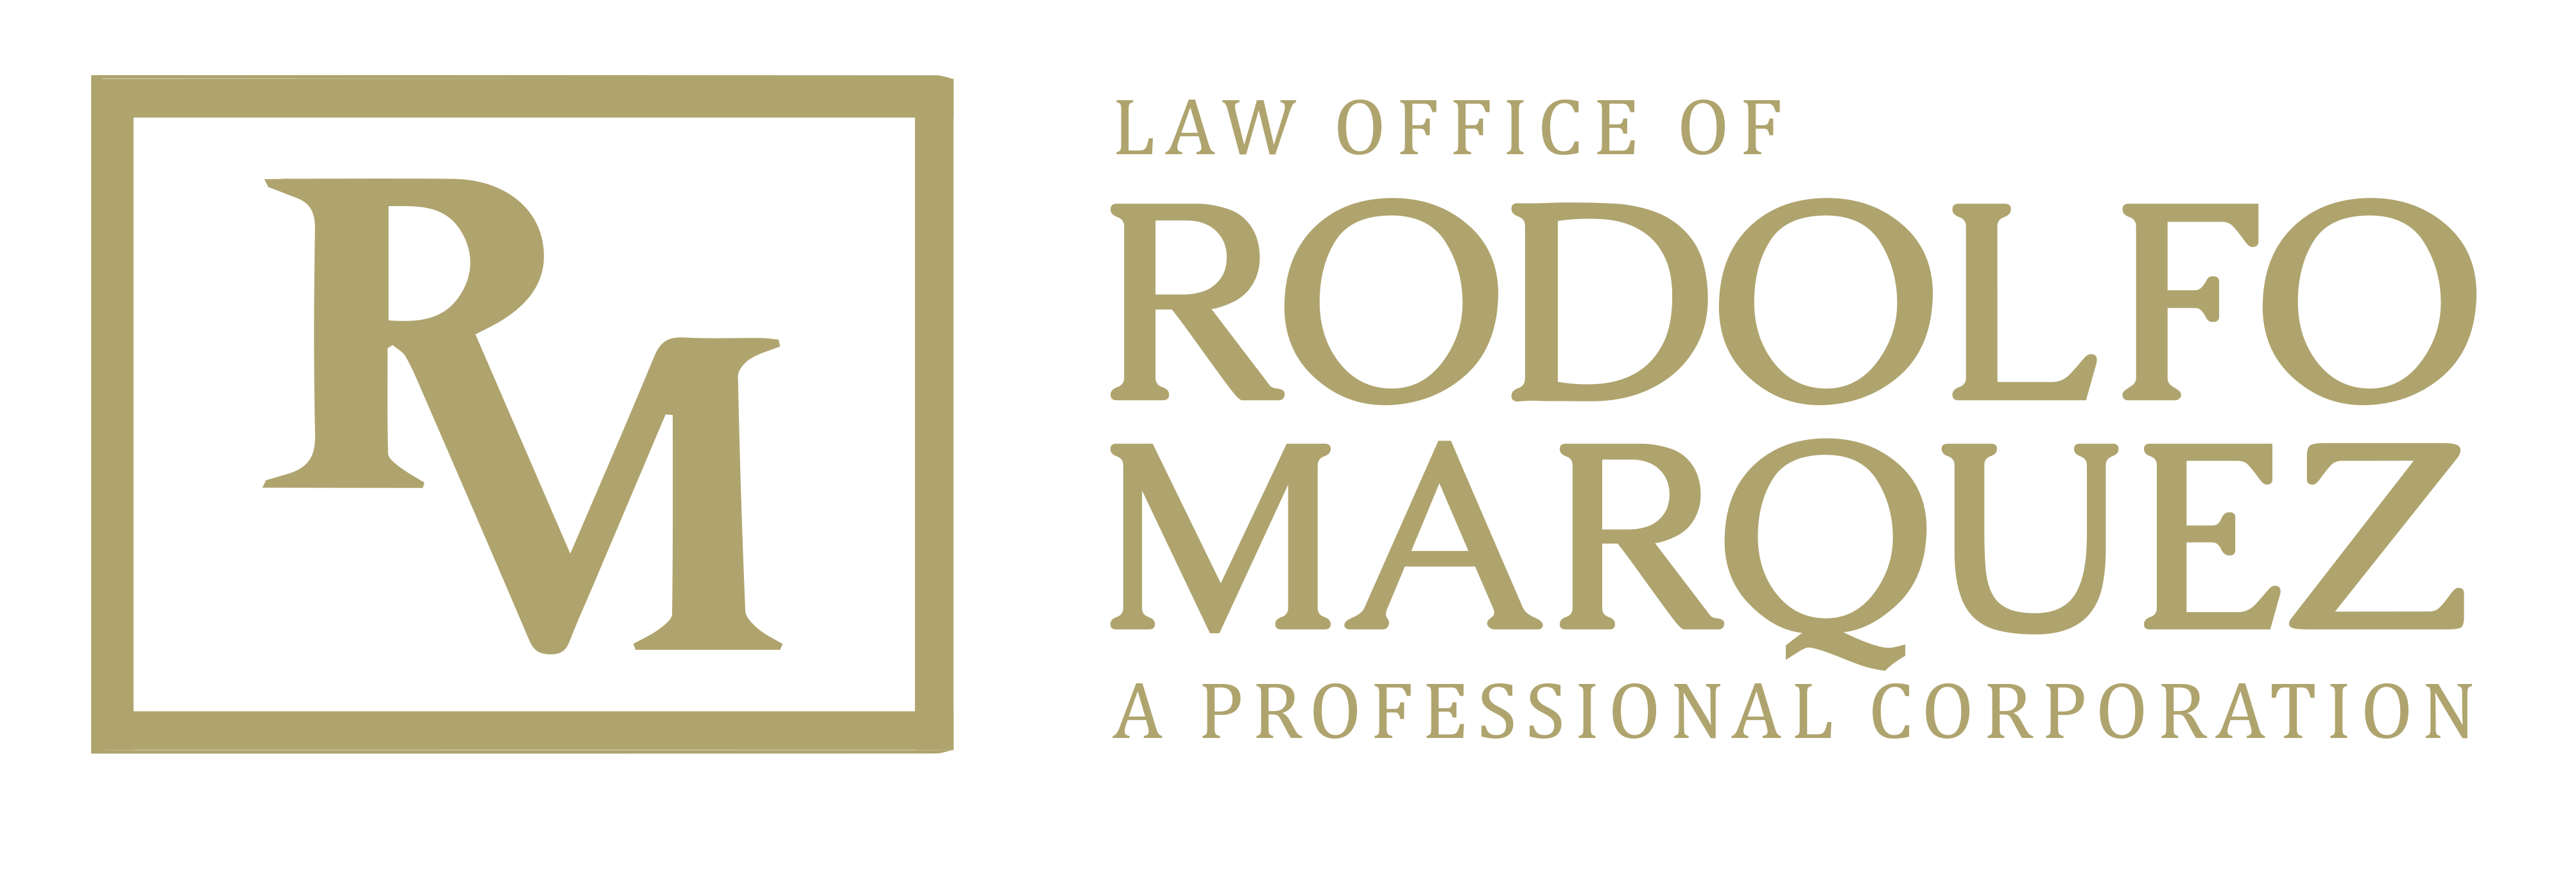 Law Office of Rodolfo Marquez